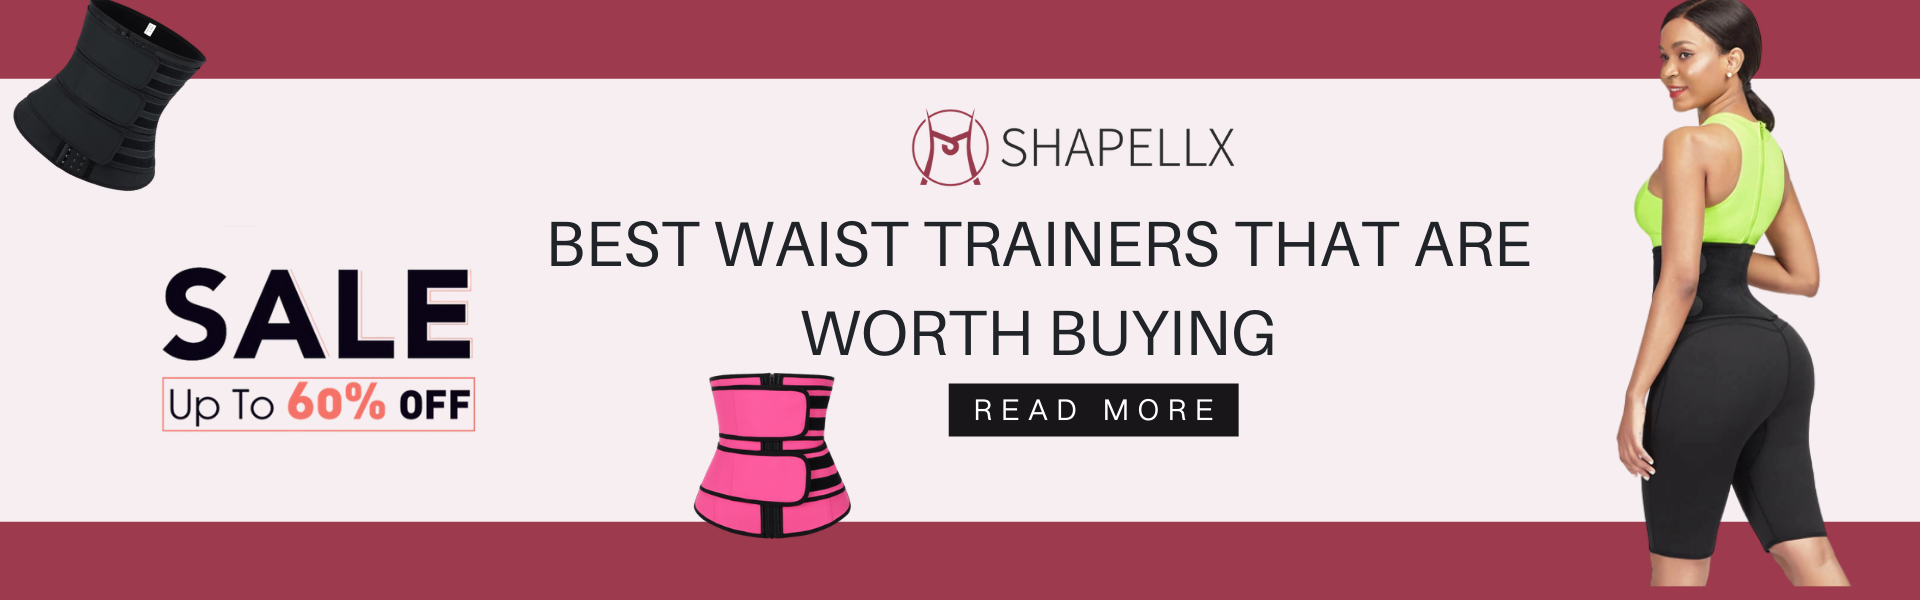 Best Waist Trainer by Shapellx That Worth Buying